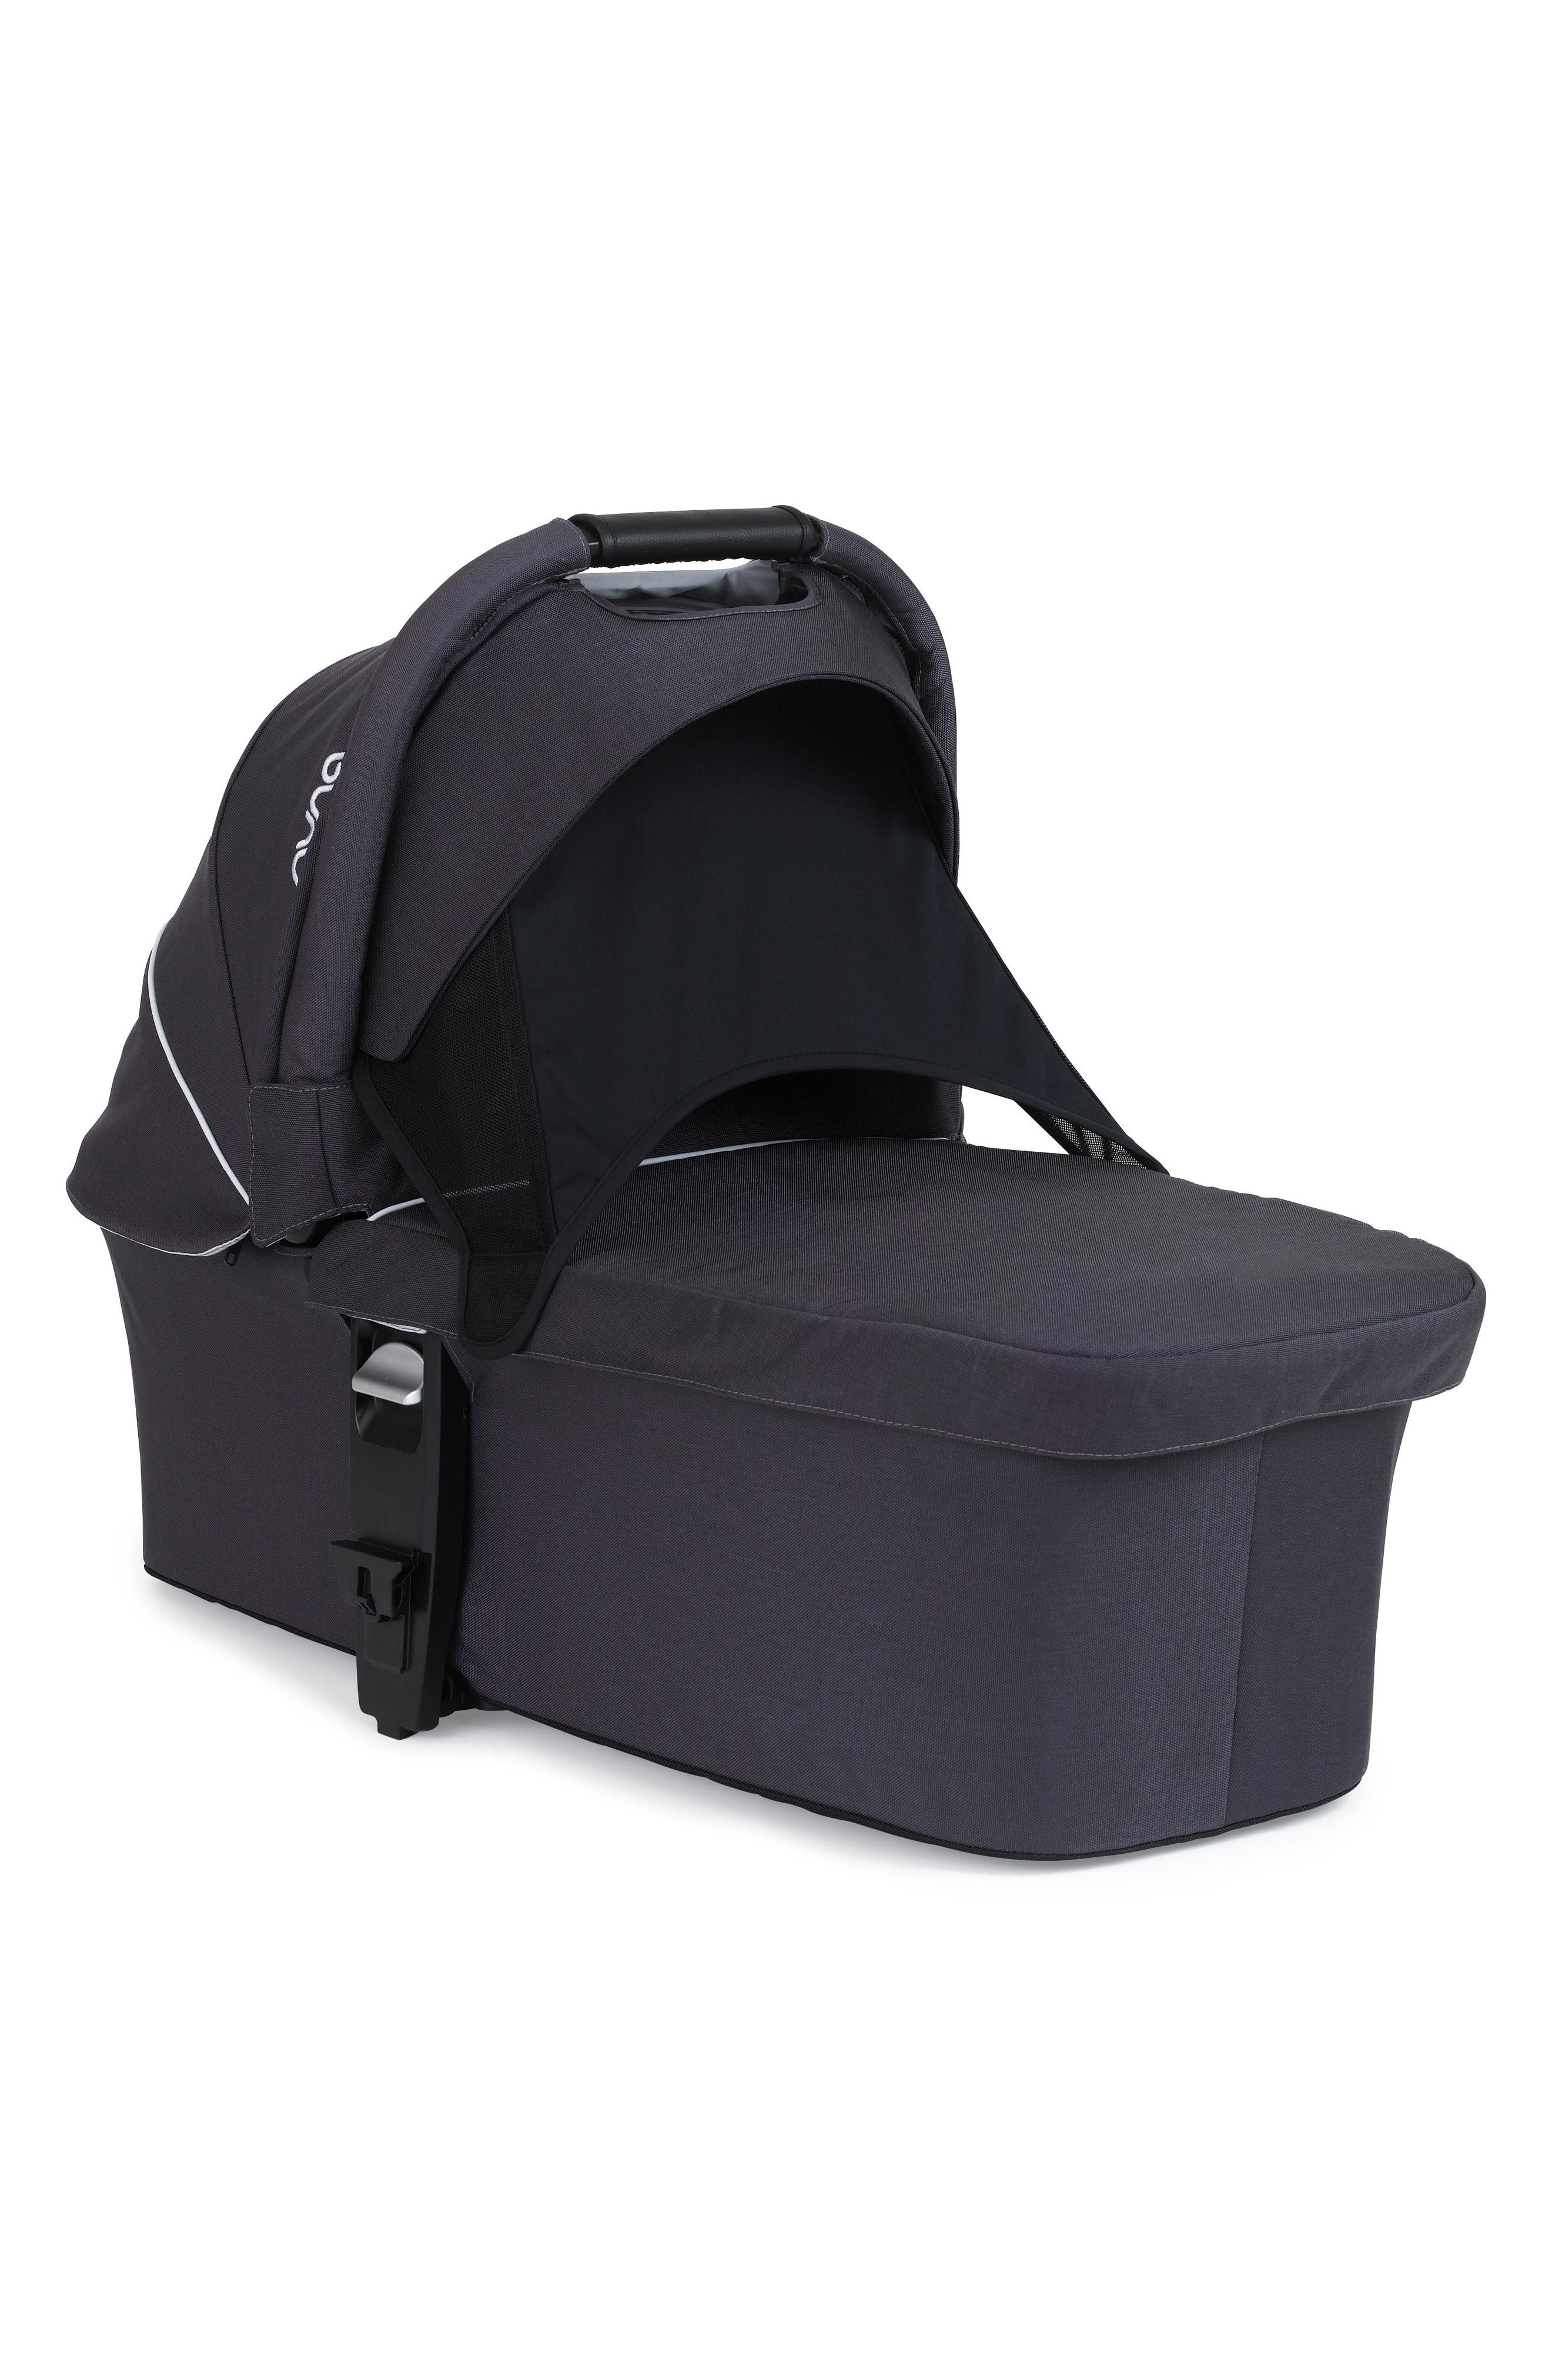 MIXX<sup>™</sup> Stroller System & PIPA<sup>™</sup> Car Seat Set,                             Alternate thumbnail 8, color,                             410